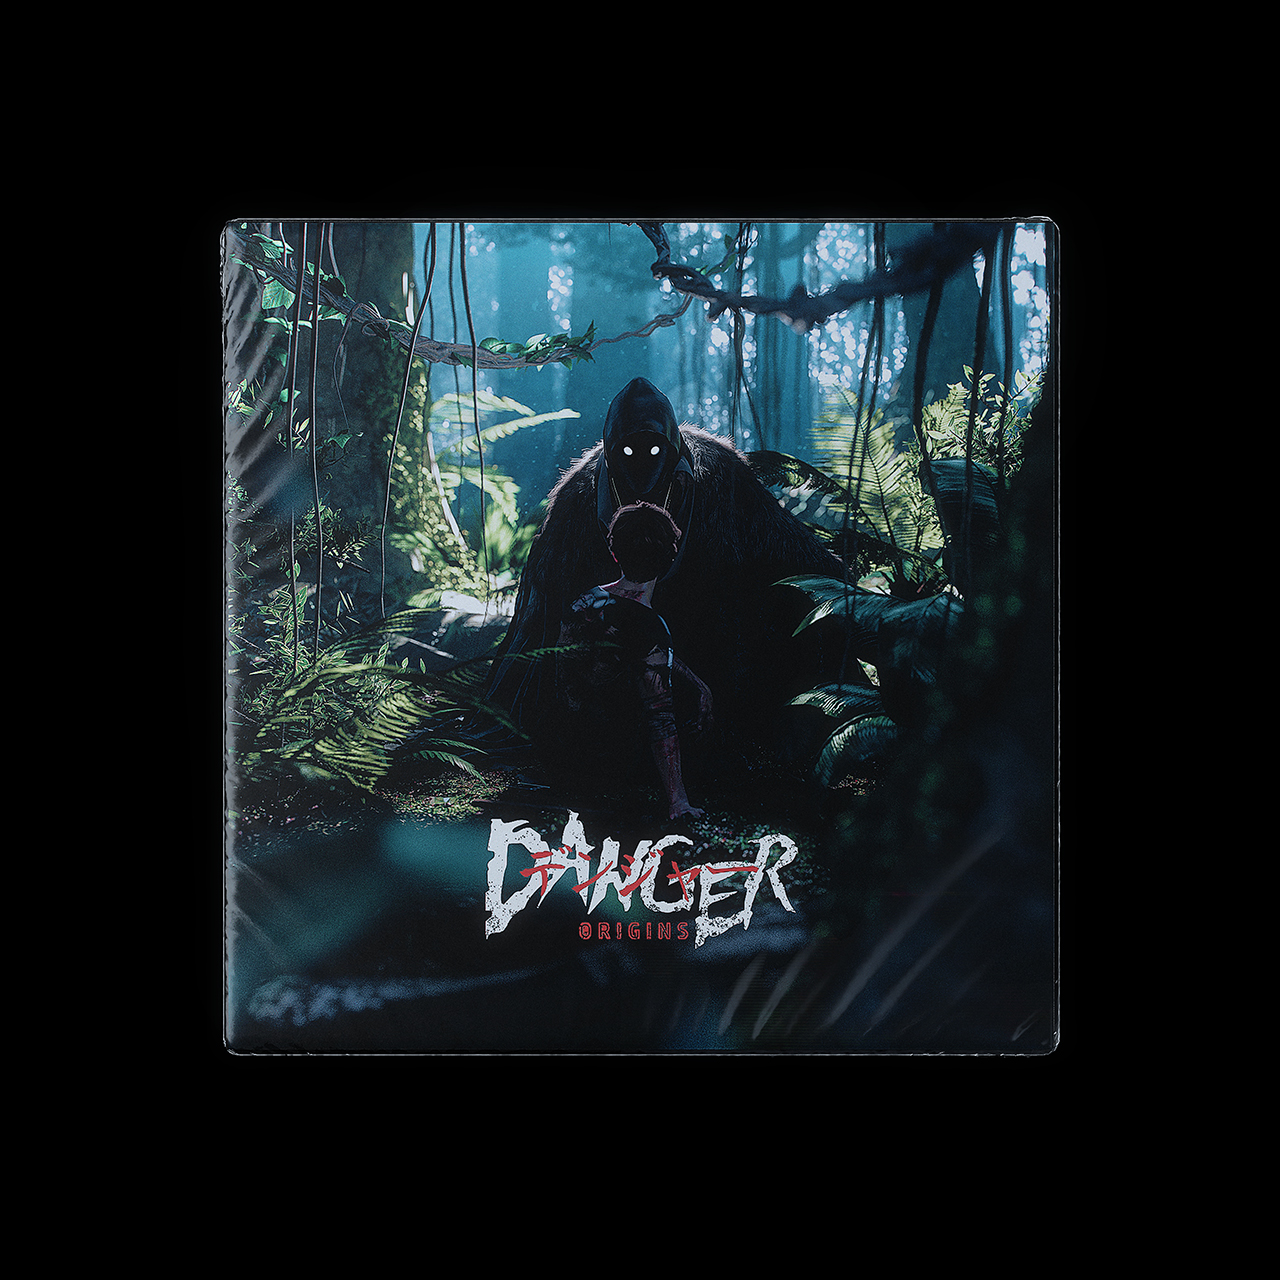 Danger - Origins LP ▲ Out January 18 2019 [Pre-Order] 12